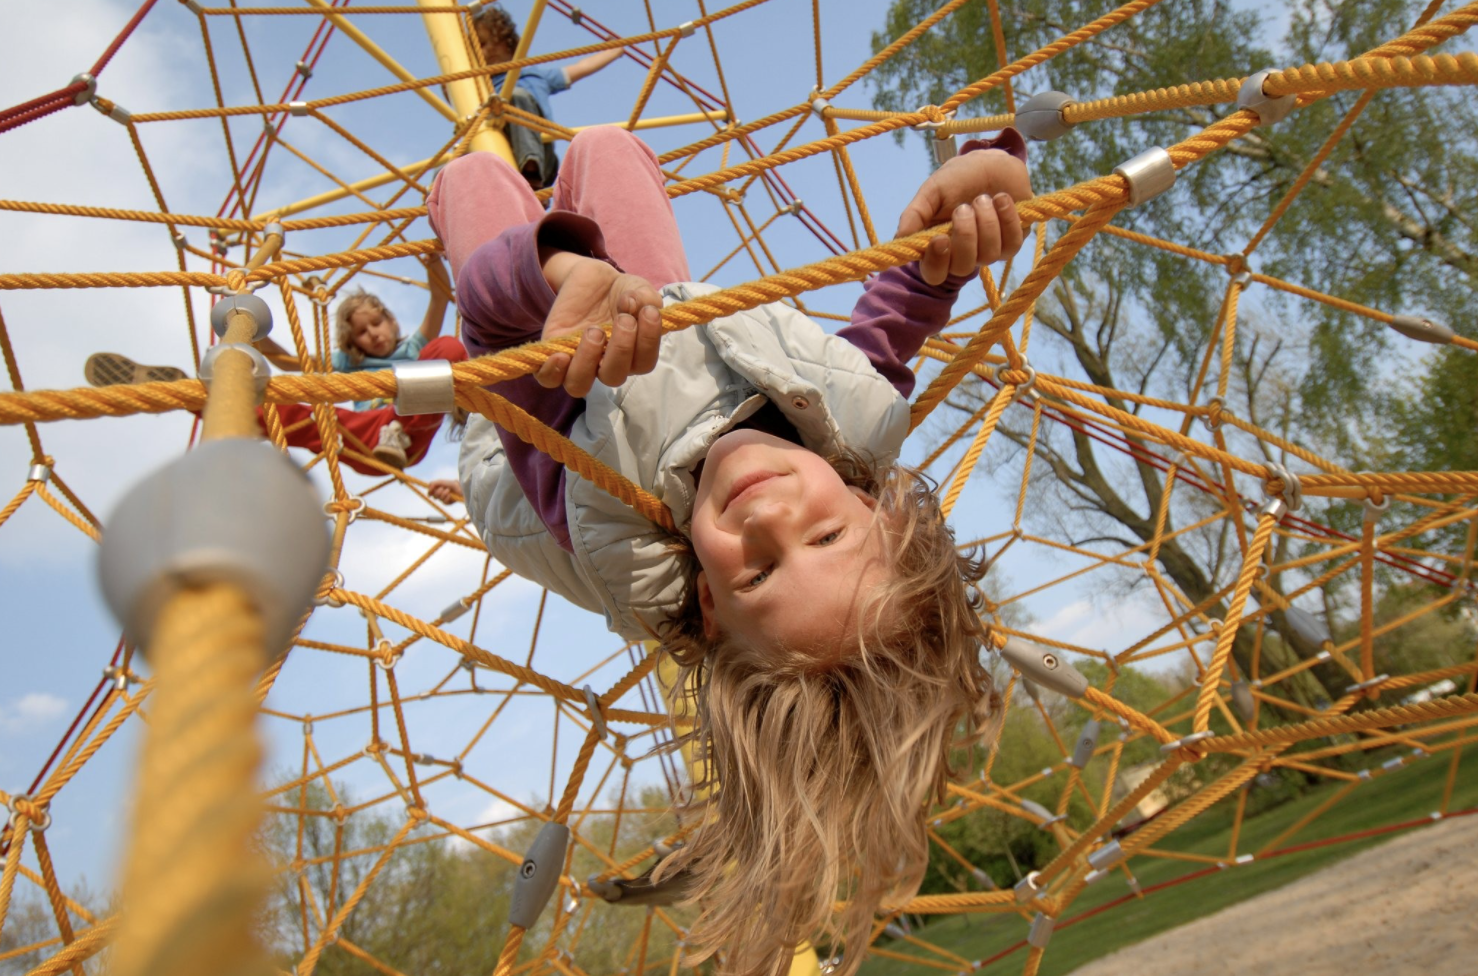 Girl hanging upside down on a rope